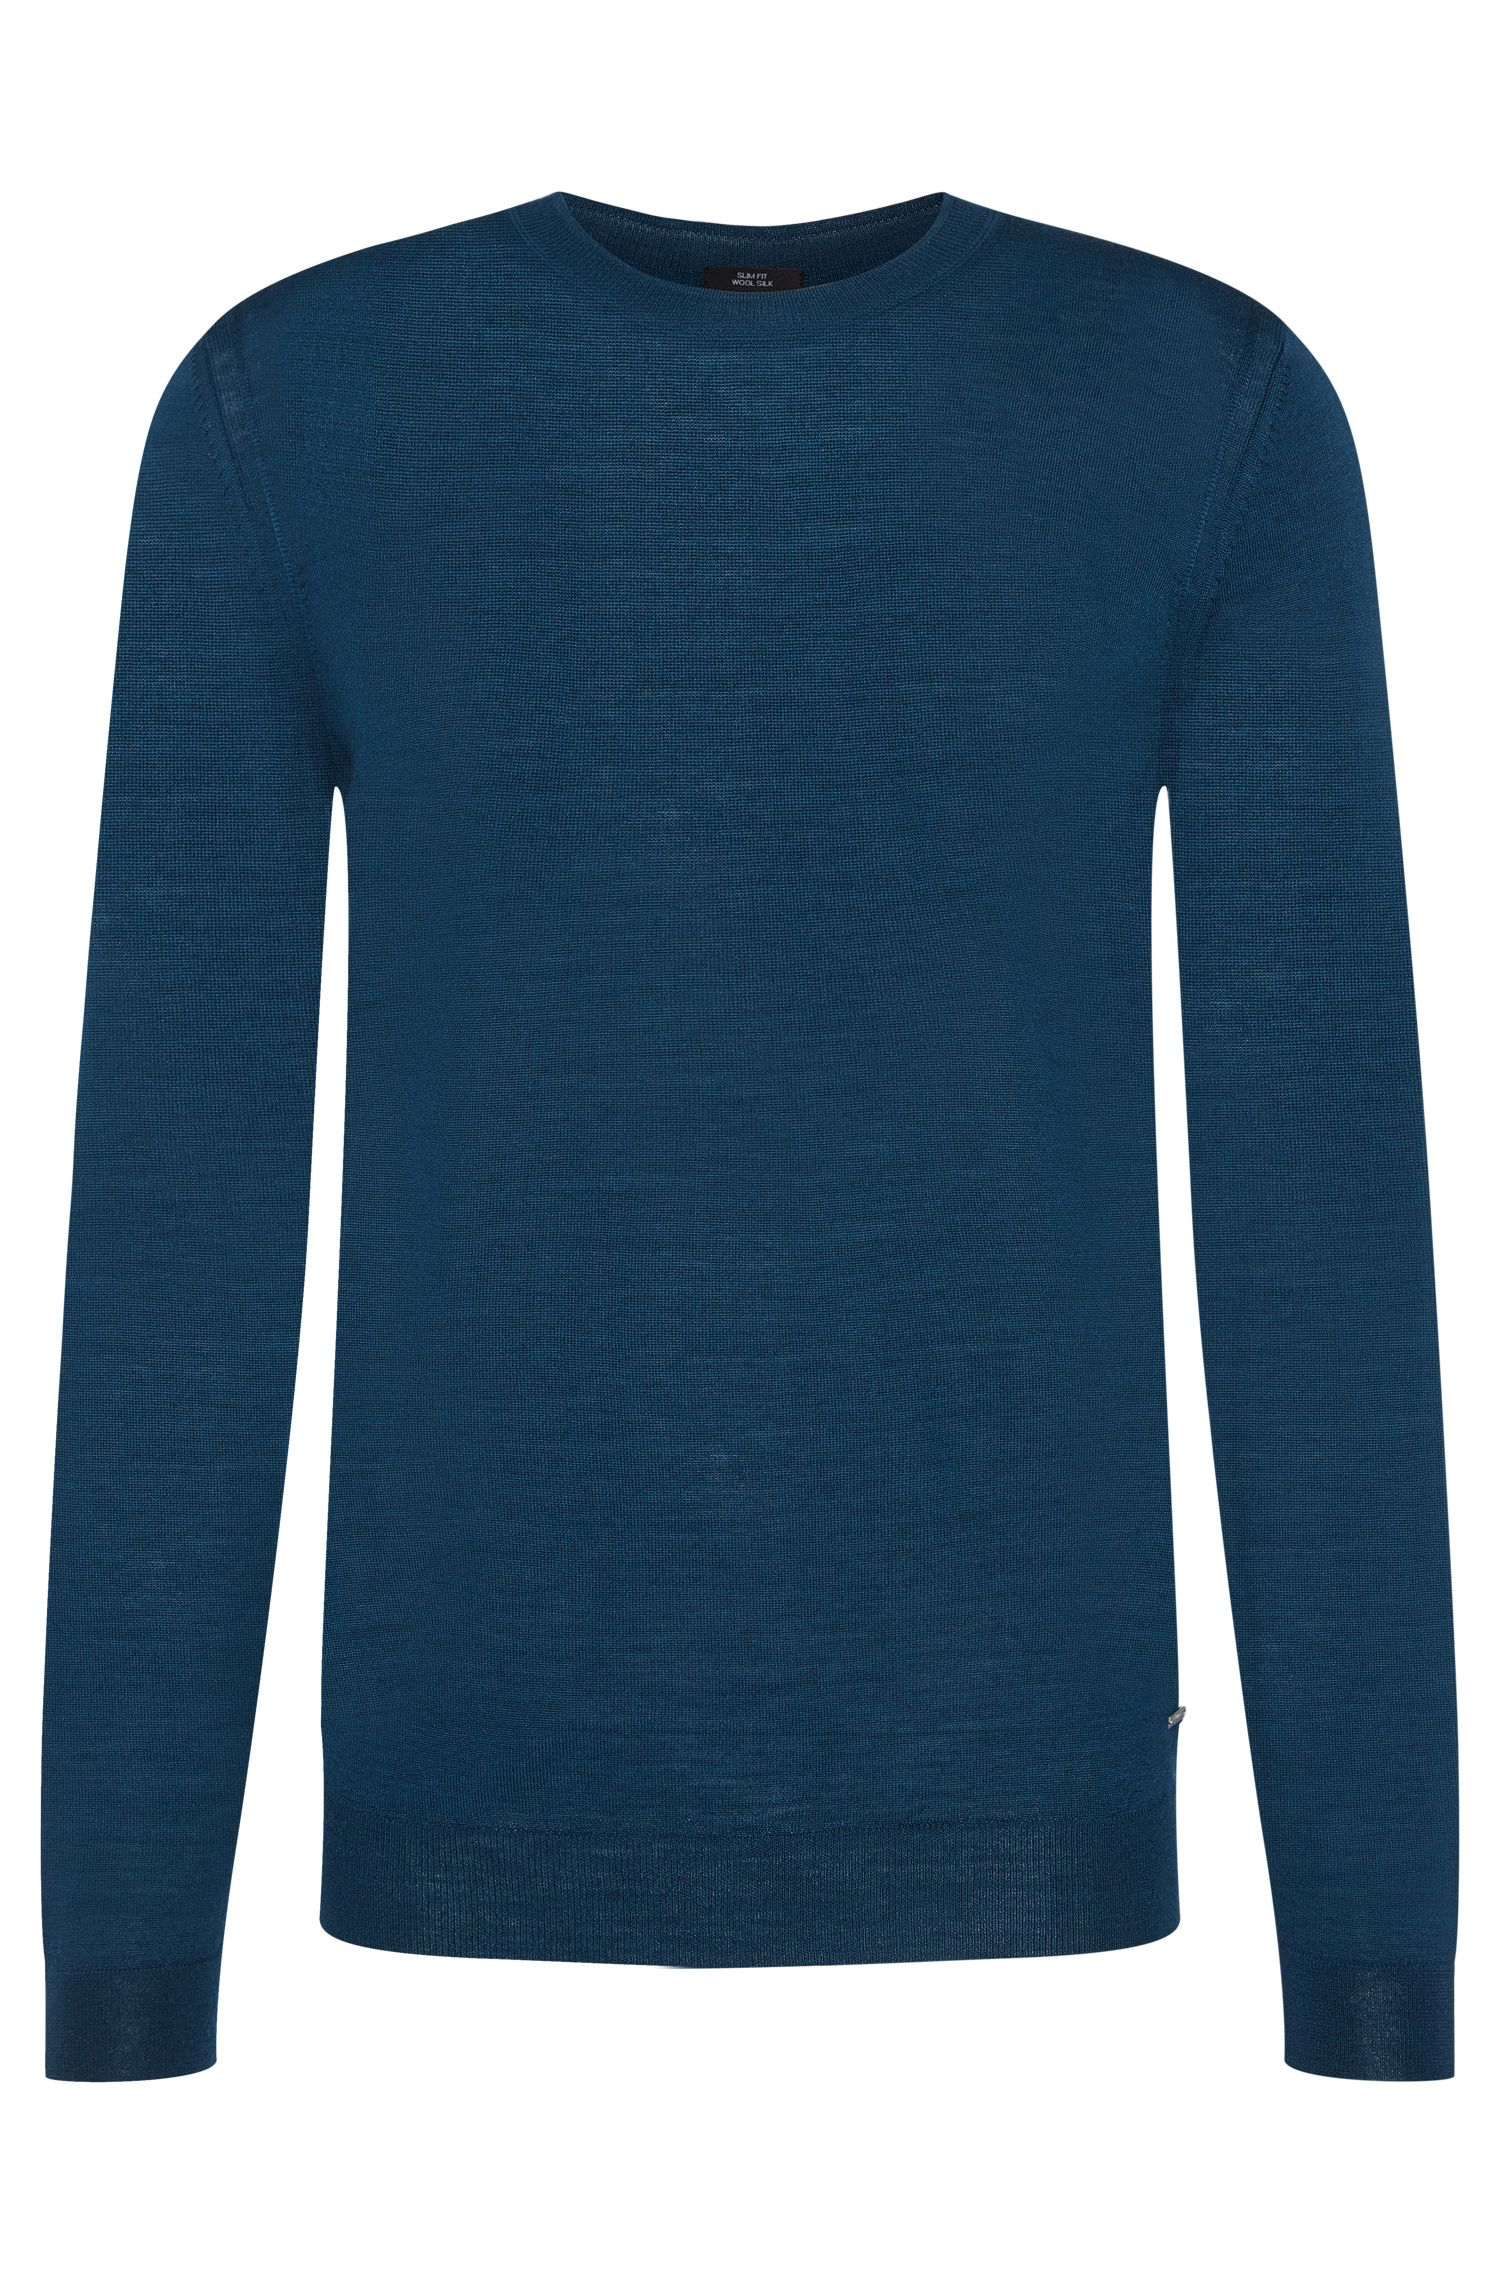 Unifarbener Slim-Fit Tailored Pullover aus Schurwoll-Mix mit Seide: 'T-Ion'